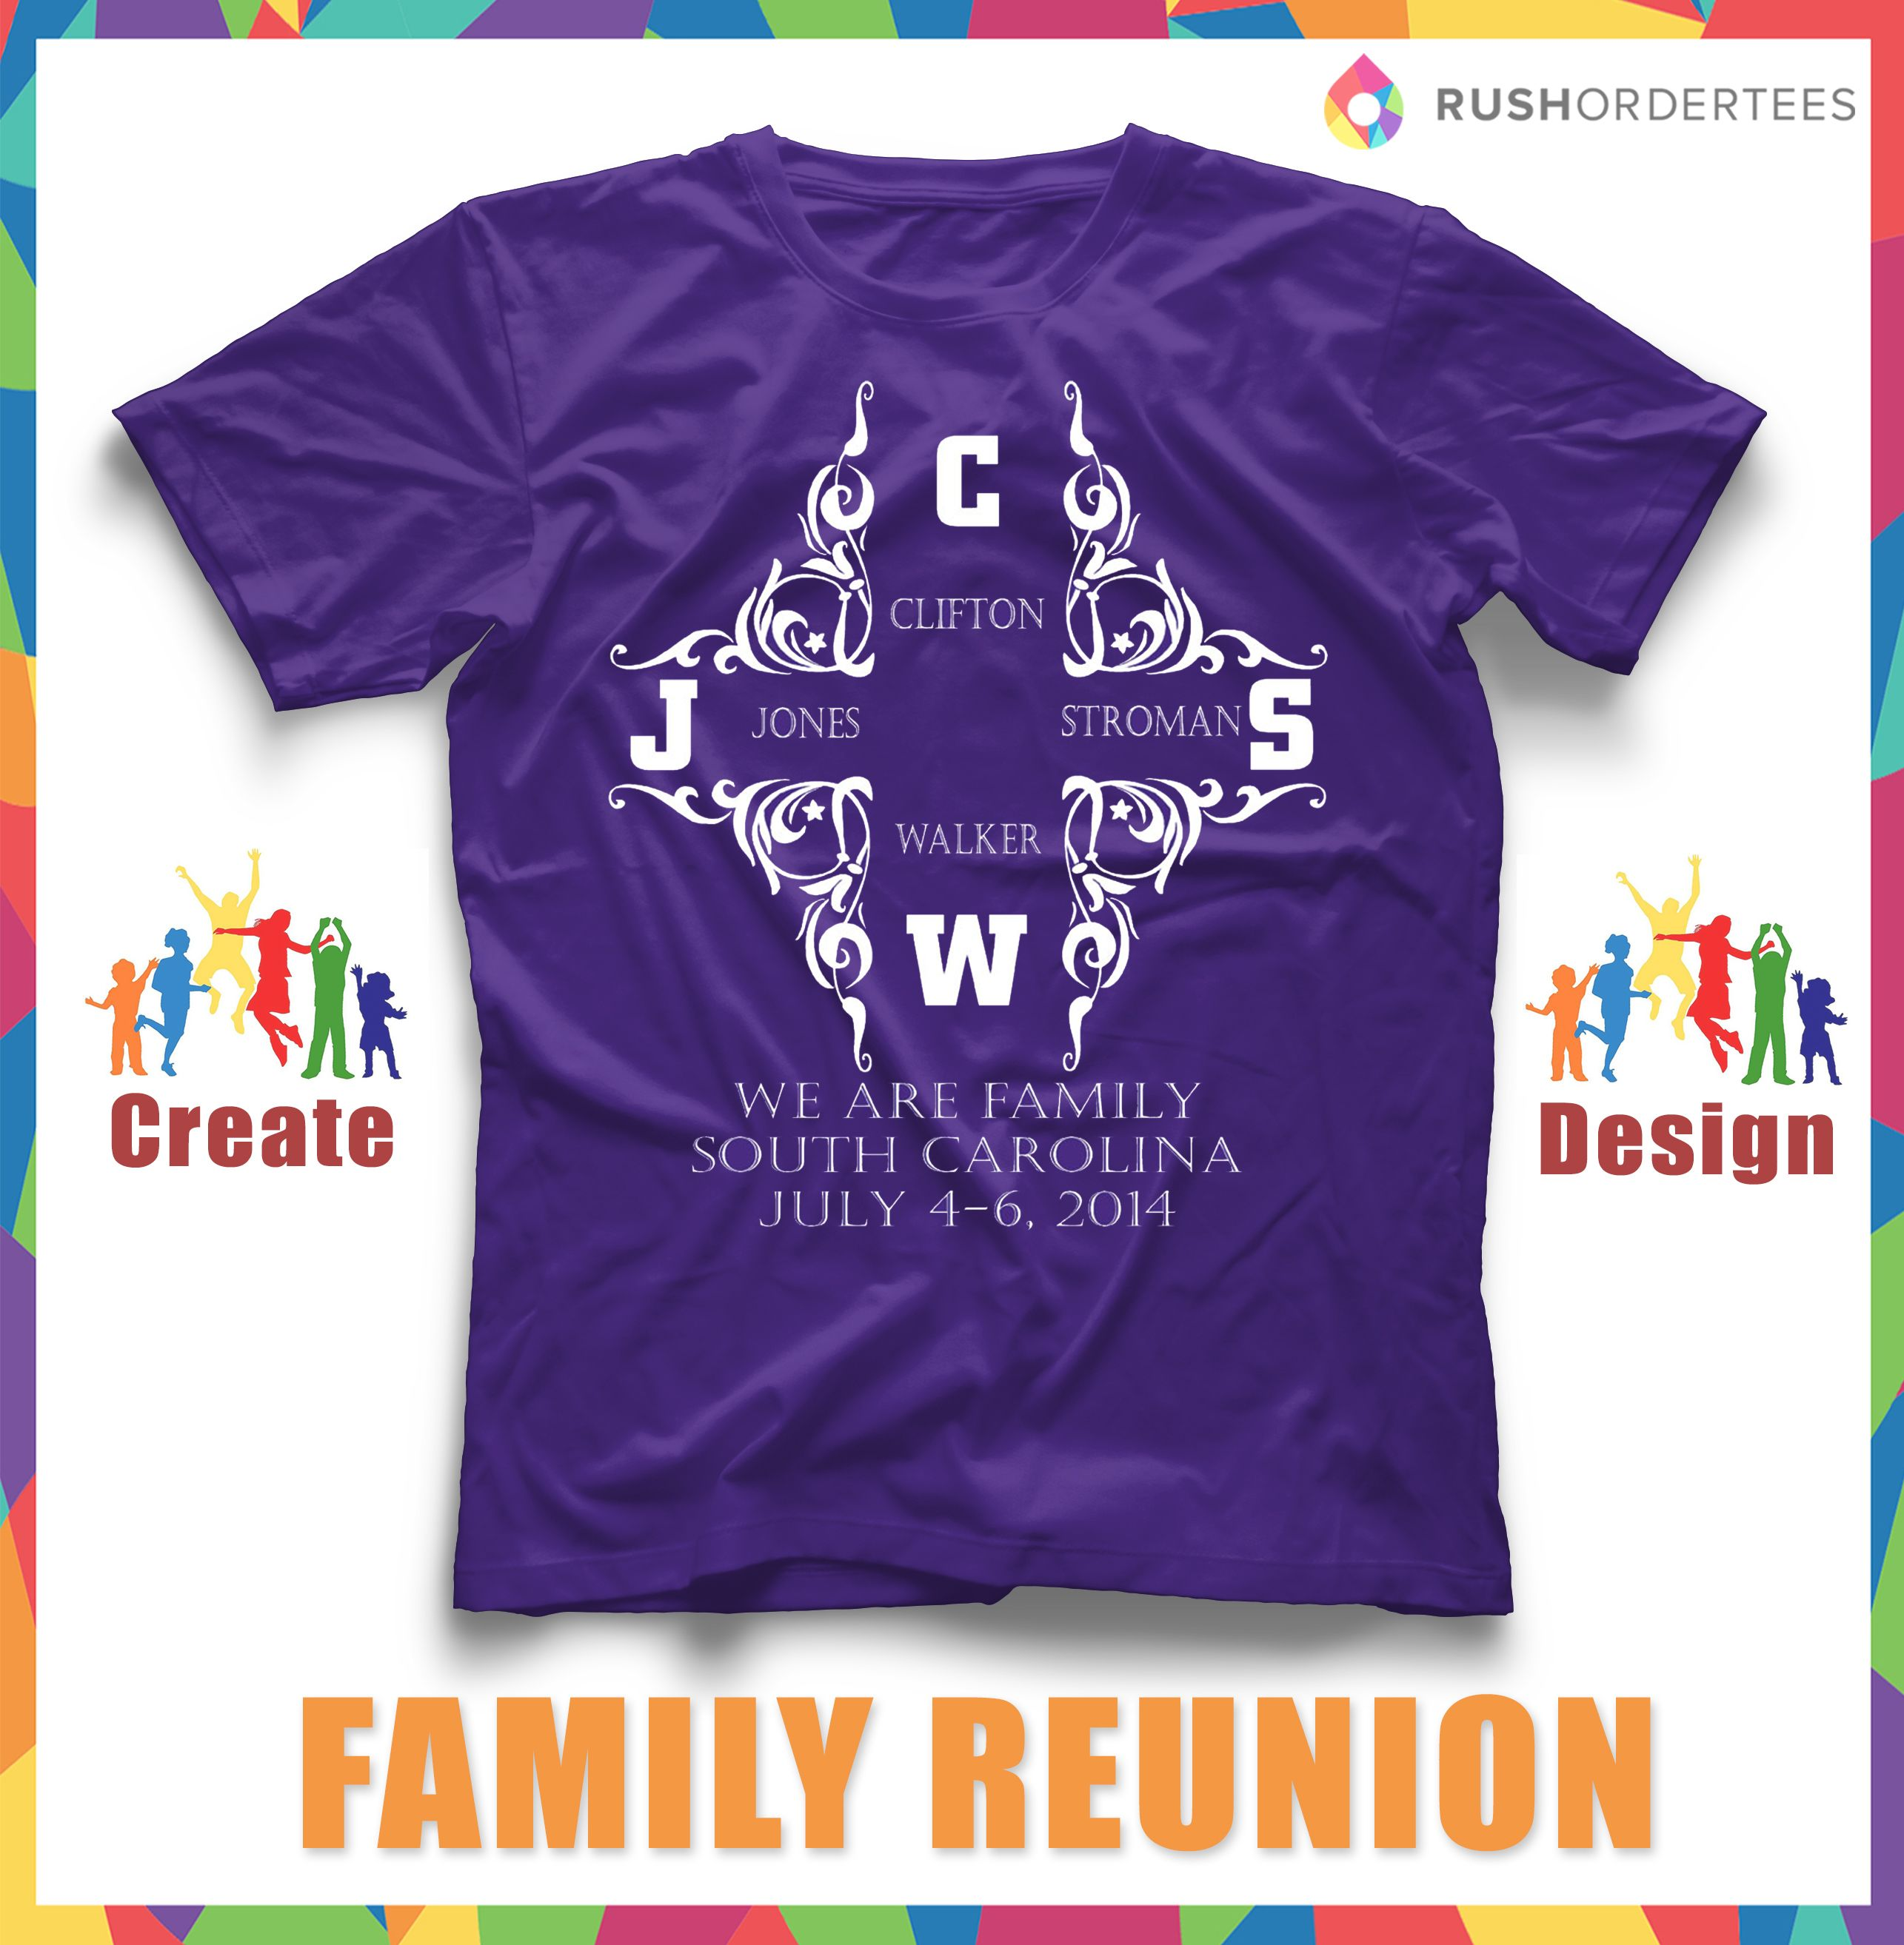 Design your own t-shirt for family reunion - Elegant Design For A Family Reunion T Shirt Create Customshirts For Your